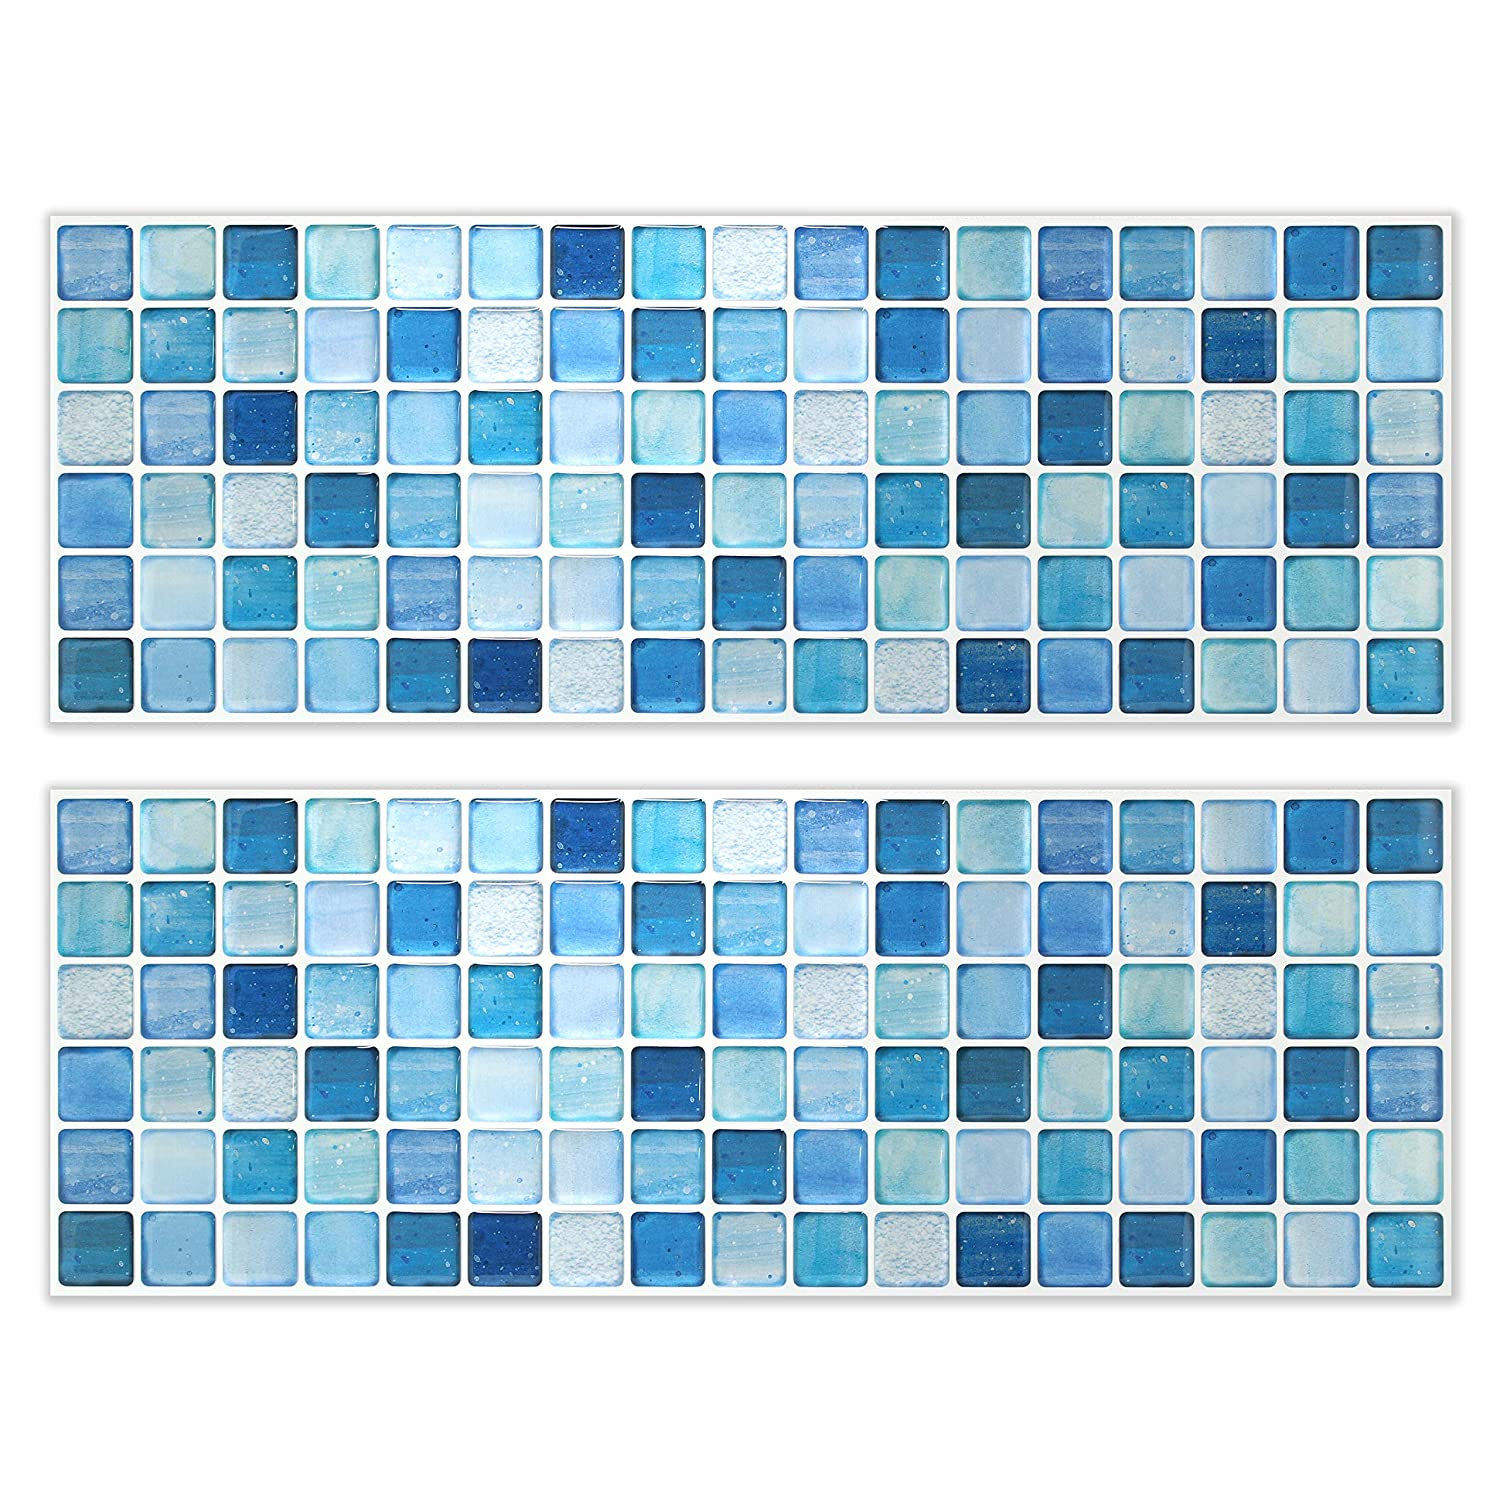 BEAUSTILE Decorative Tile Stickers Peel and Stick Backsplash Fire Retardant Tile Sheet (2pcs) (N.Blue)